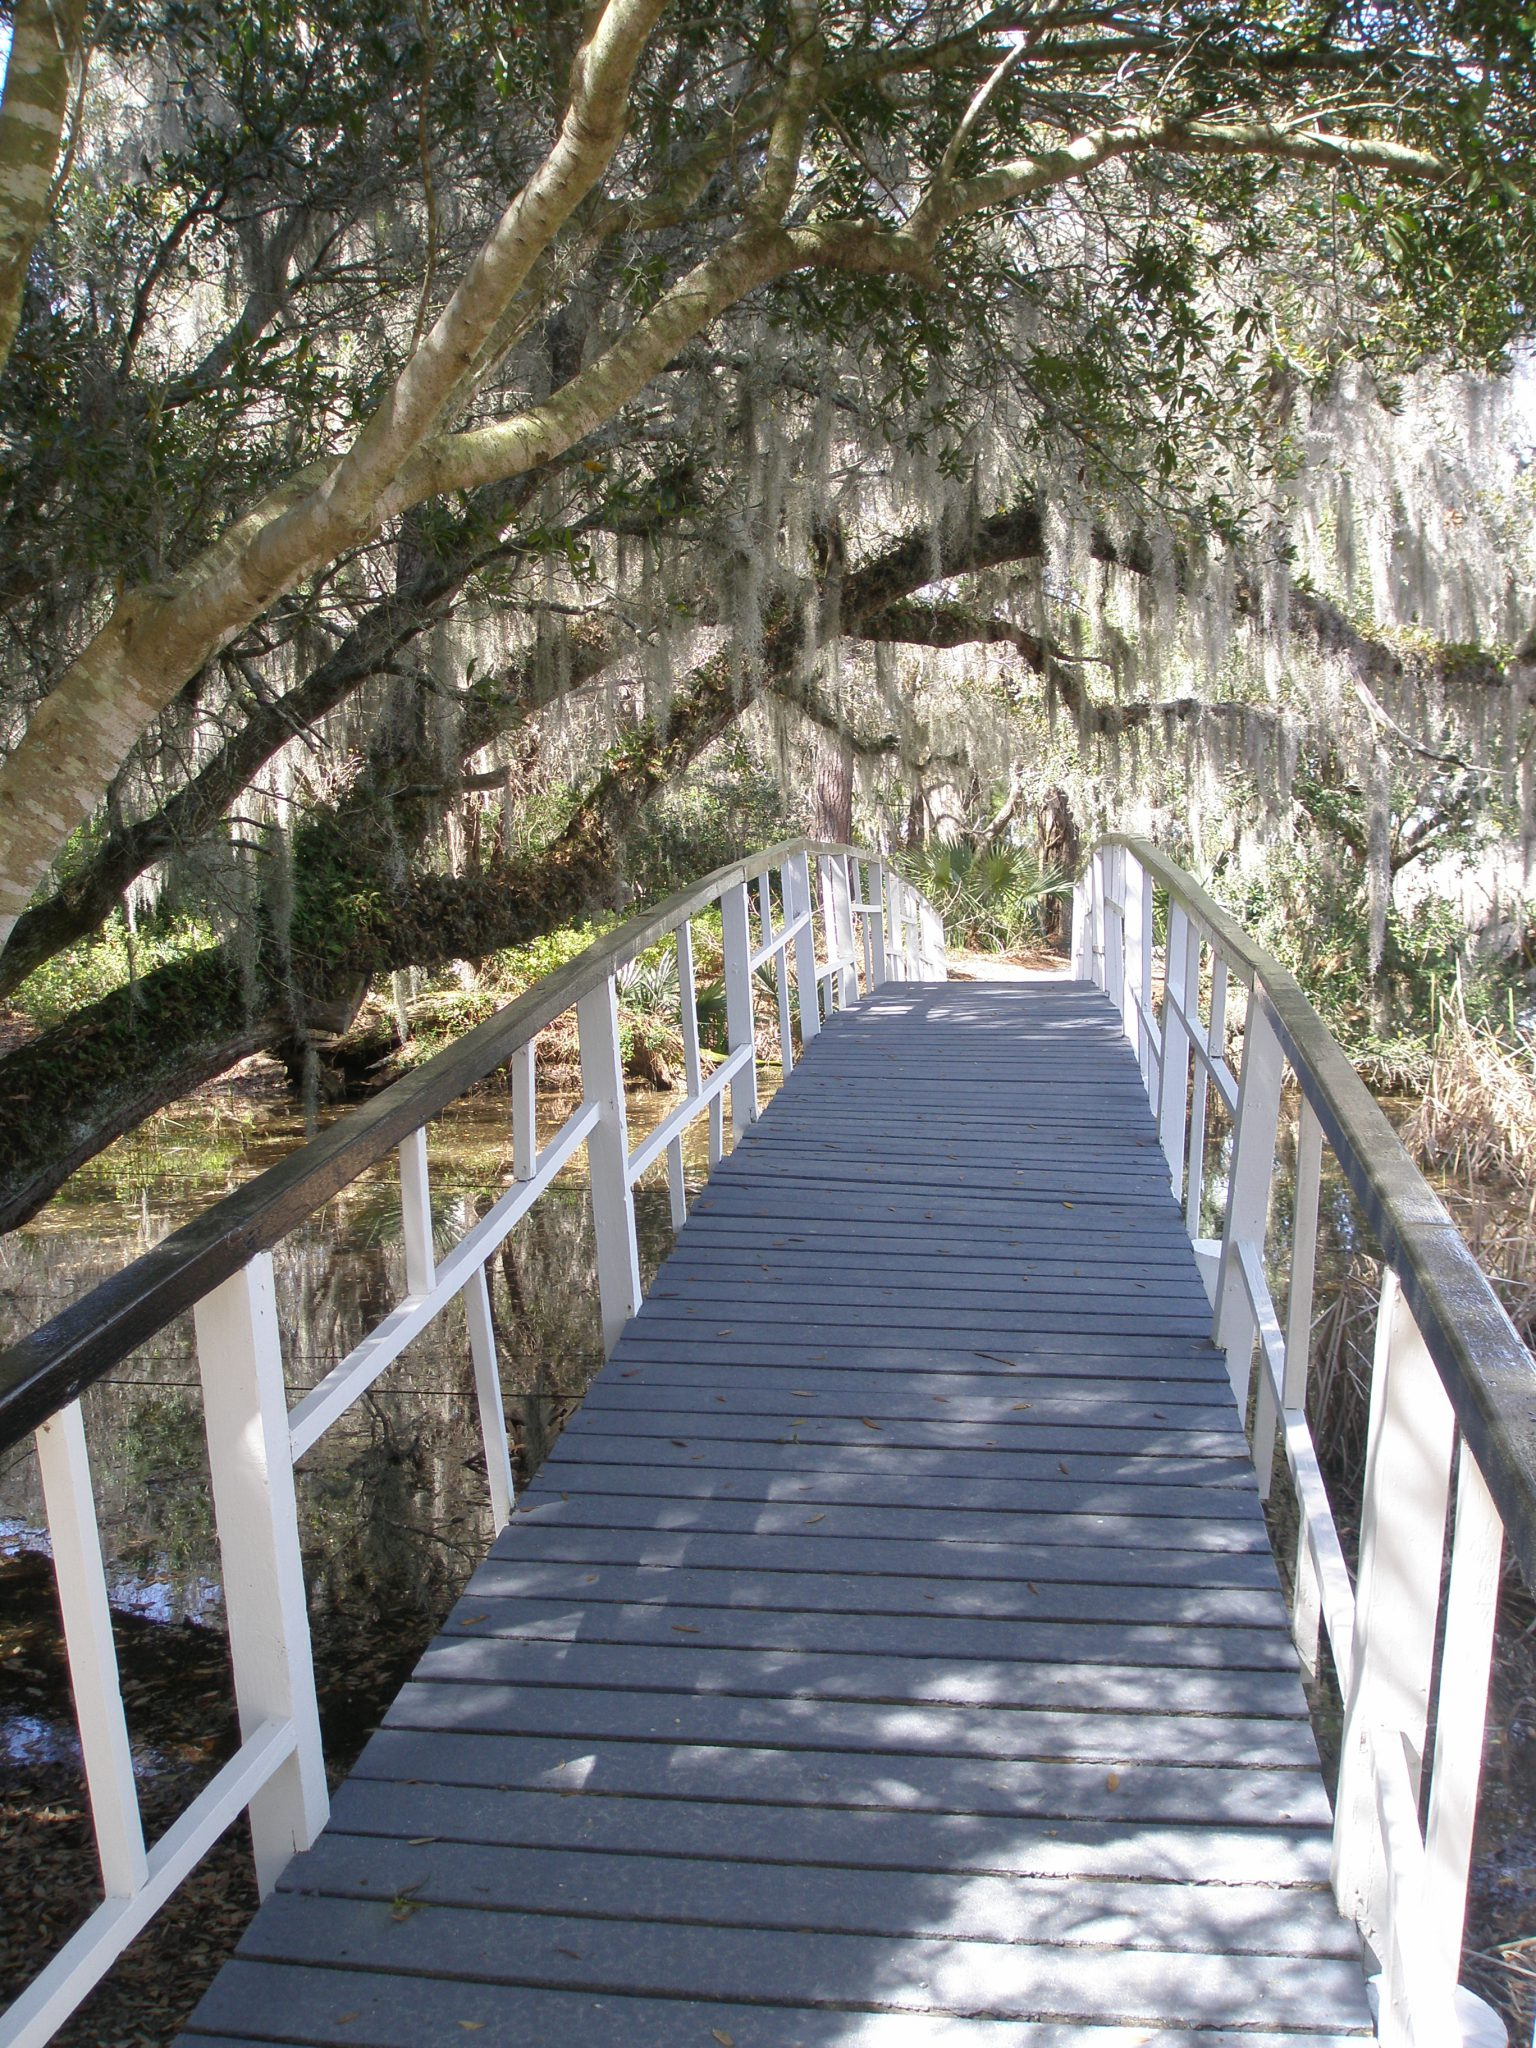 An oriental-style bridge spans an inlet of the Ashley River, leading to a wildlife tower and nature trails. A live oak tree and Spanish Moss create a living tunnel.